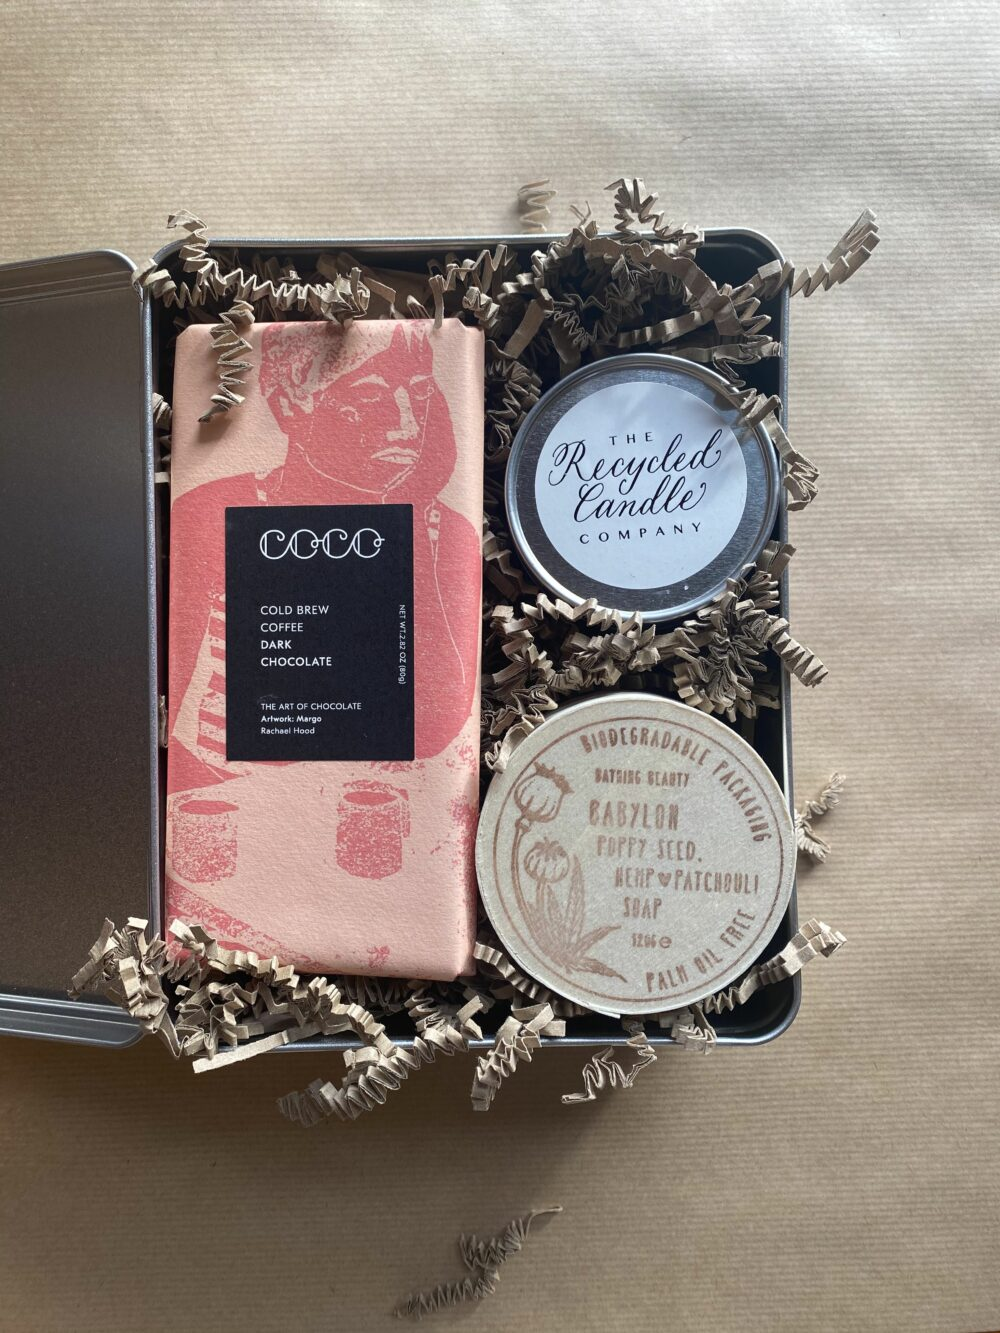 metal gift tin containing a bar of Cold Brew Coffee and Colobian single origin dark chocolate, Smoke scented recycled candle and patchouli scented, poppy seed studded, hemp oil enriched soap